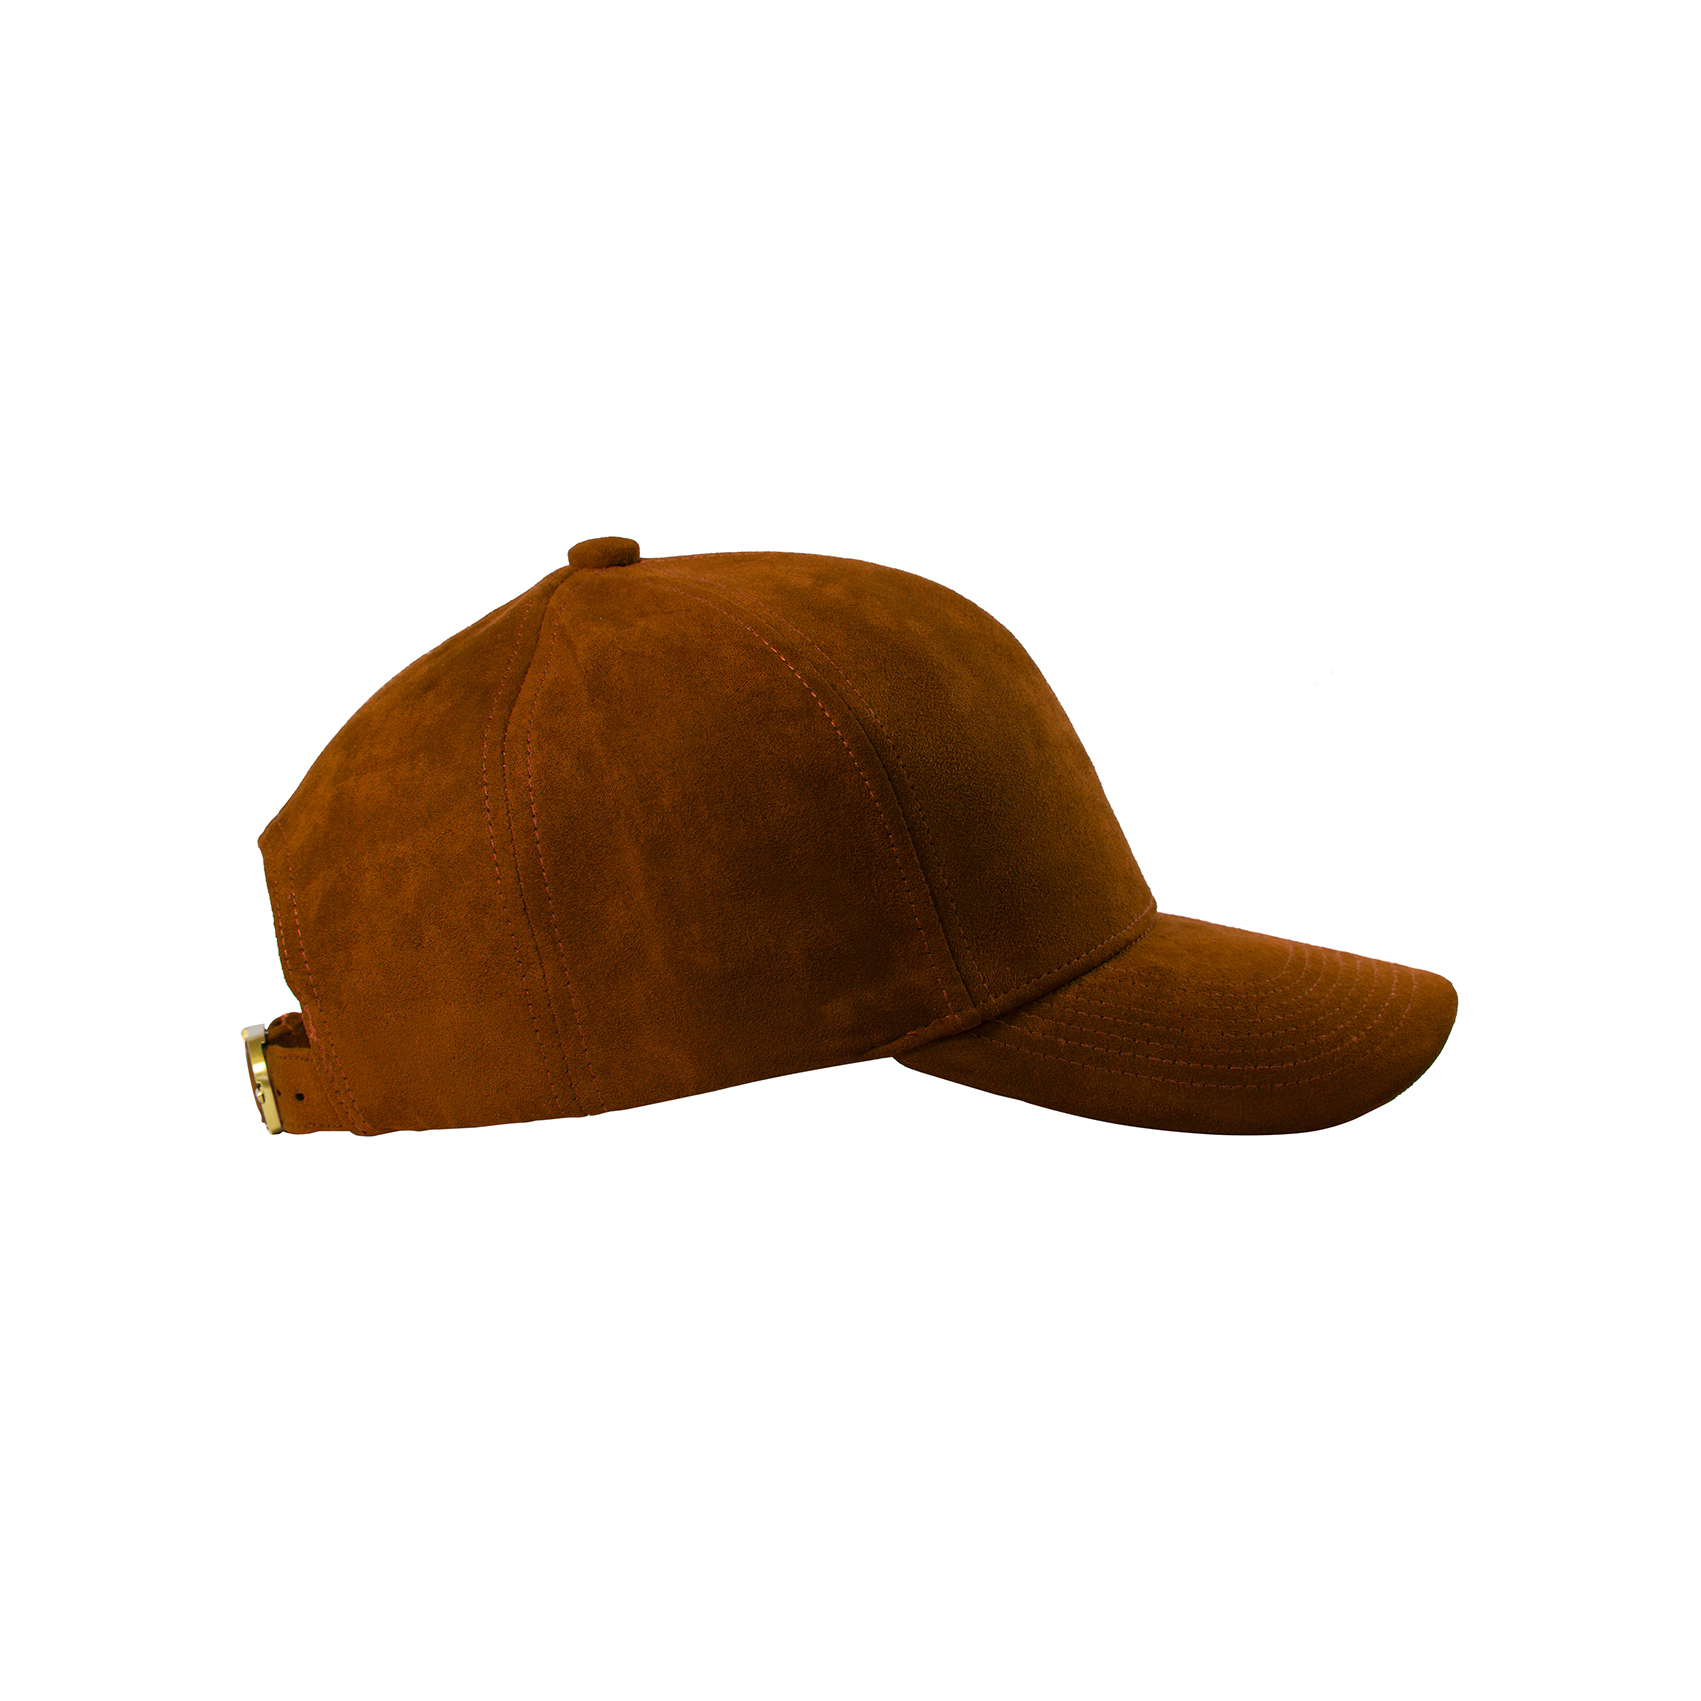 BASEBALL CAP BROWN SUEDE GOLD SIDE